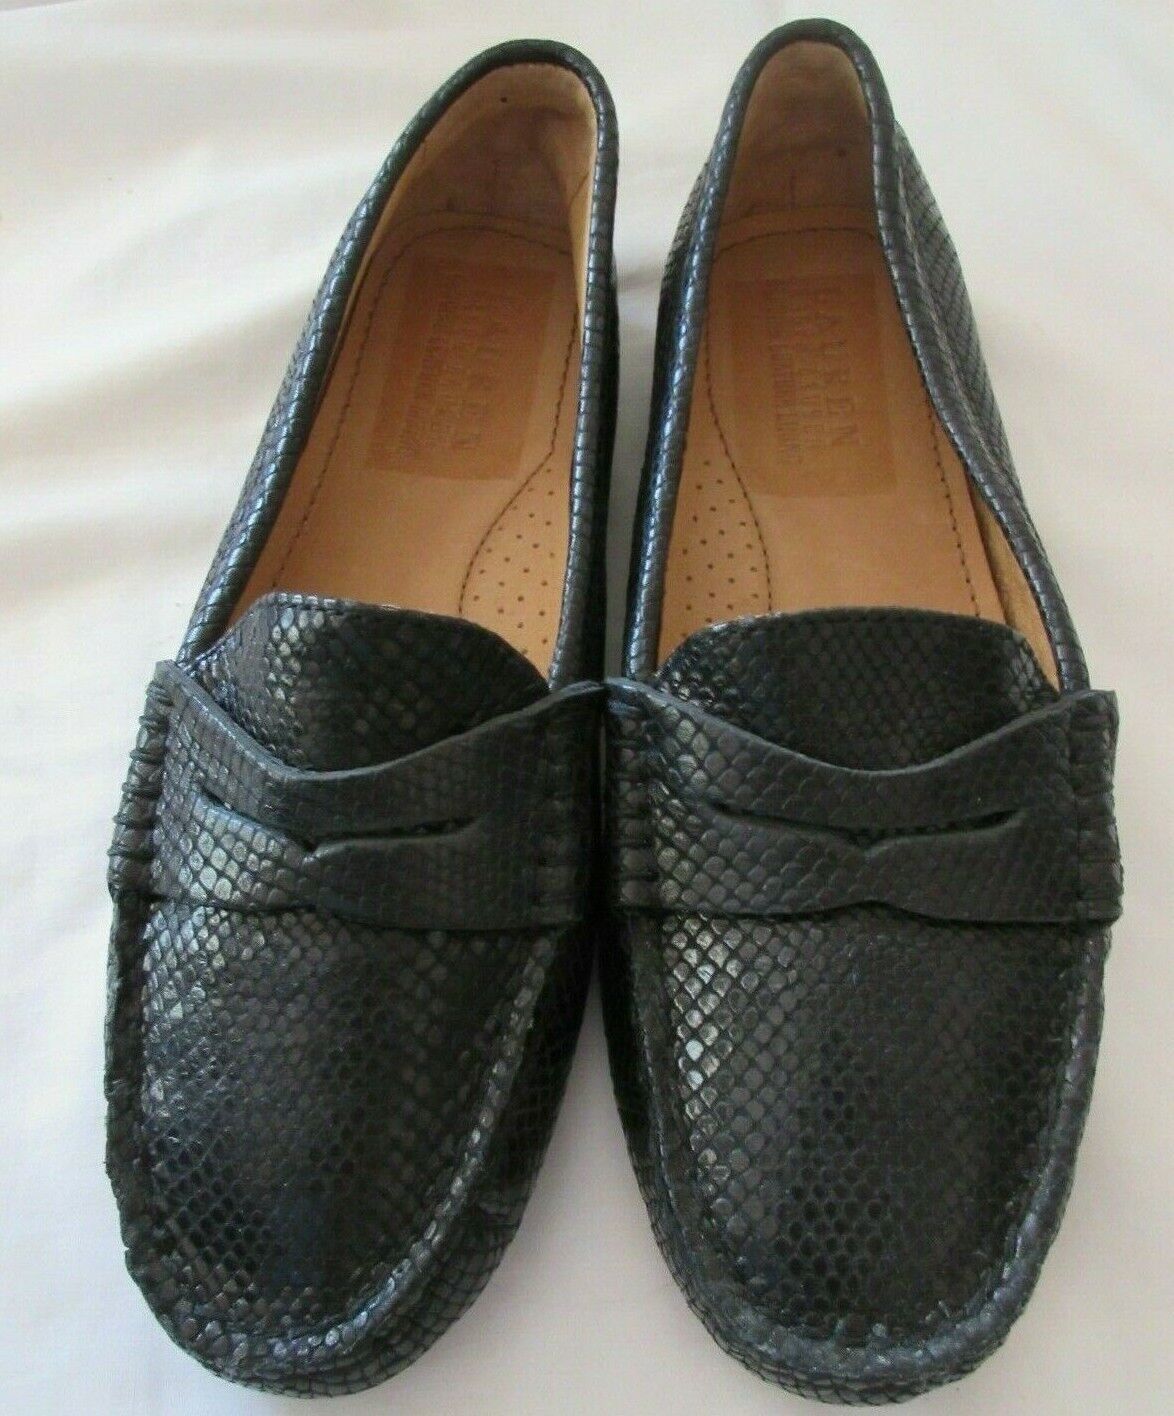 RALPH LAUREN Camila Wouomo 6.5 B nero Leather Snakeskin Driving Loafers nuovo